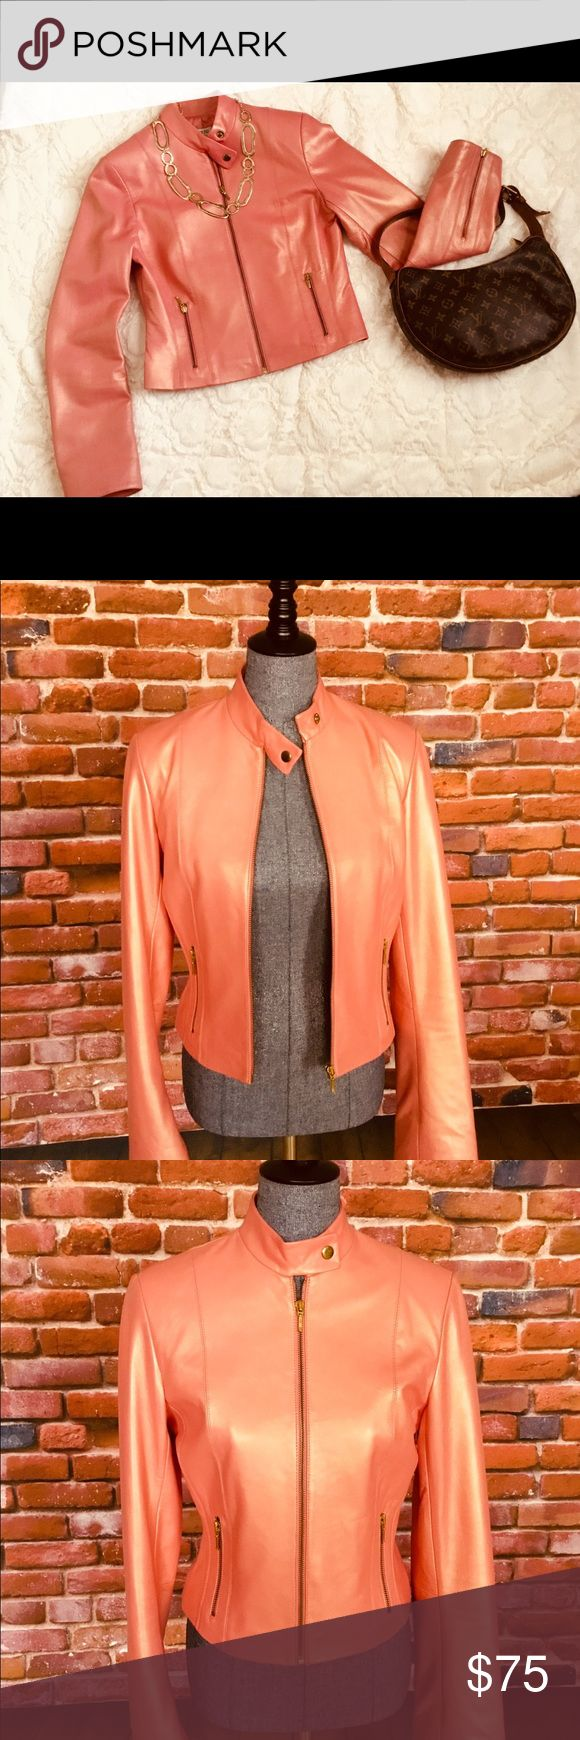 Cache Genuine Leather Pearlized Peach Jacket sz 6 Like New! Beautiful 100% leather jacket. Unique pearlized peach color is truly eye catching, and can be worn with jeans or matching leather skirt (also for sale).  Product details: *Zip Front *2-pockets with gold zipper detail *Long sleeves with gold zipper detail at cuffs *Snap tab collar *Lined *Mid-weight *Approx. 22 inches length  Fit and sizing: True women's size 6.  Fabric and Care: Professional Leather Clean Cache Jackets & Coats…